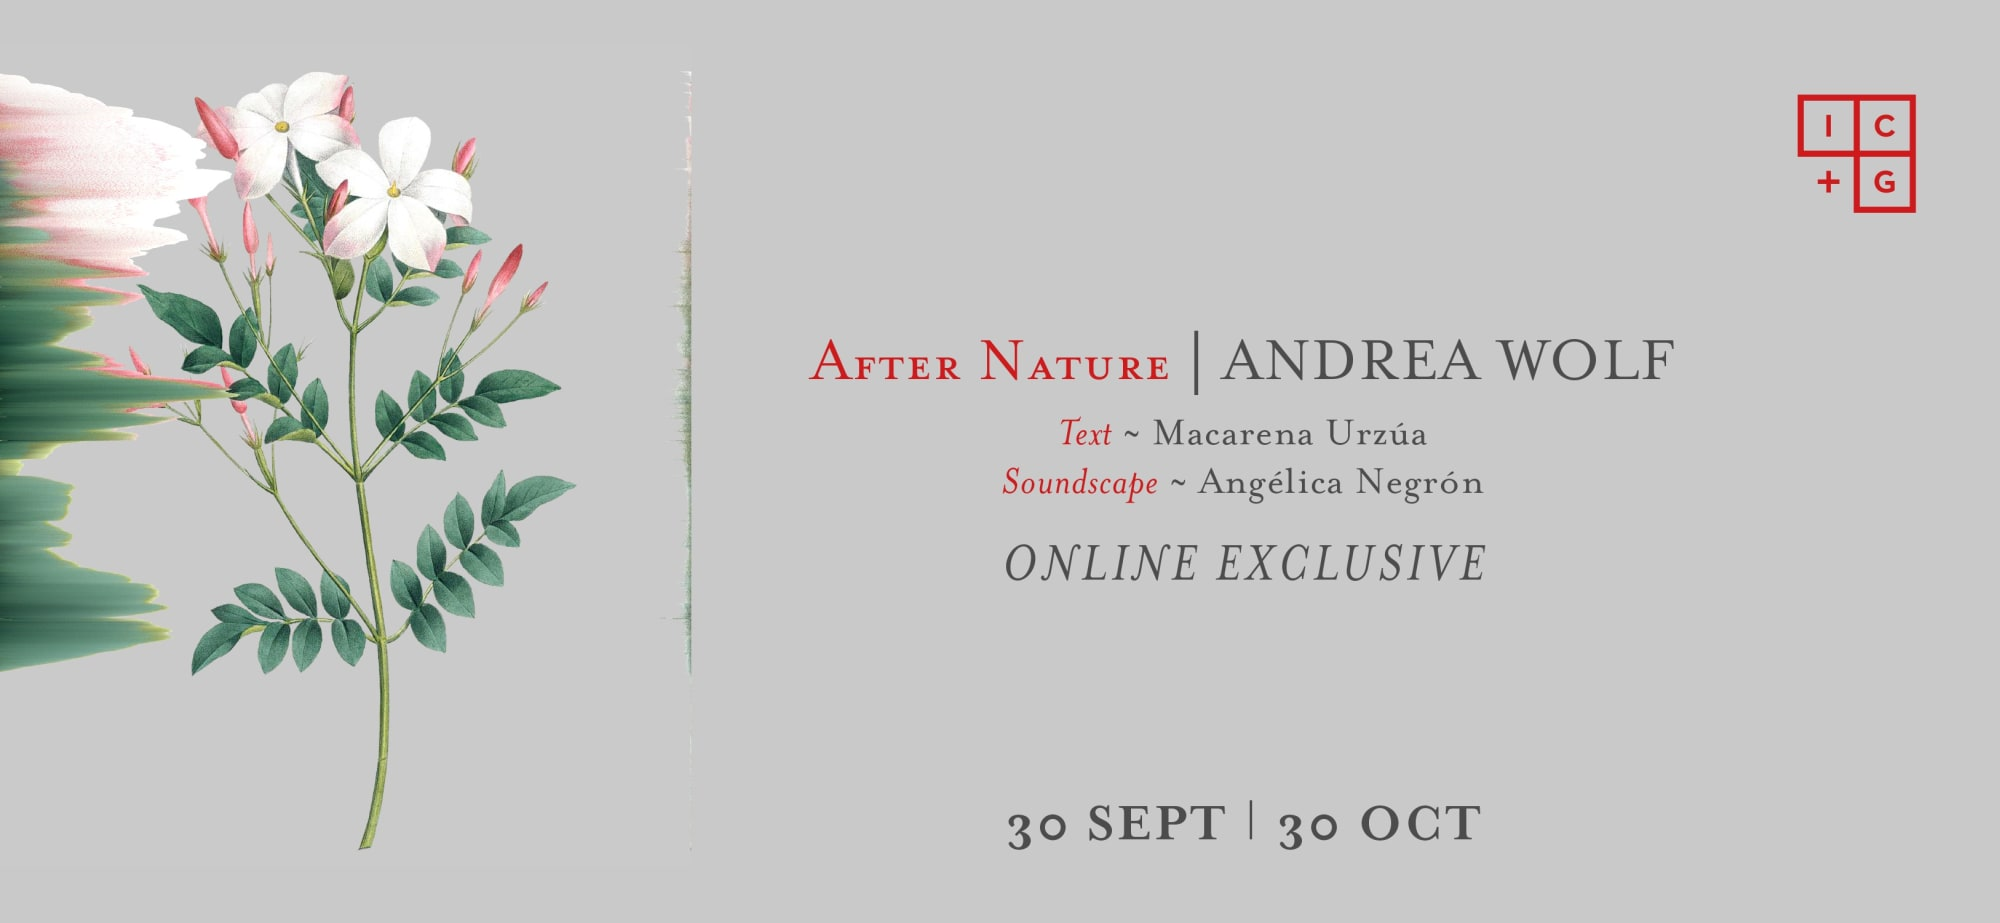 After Nature | Andrea Wolf